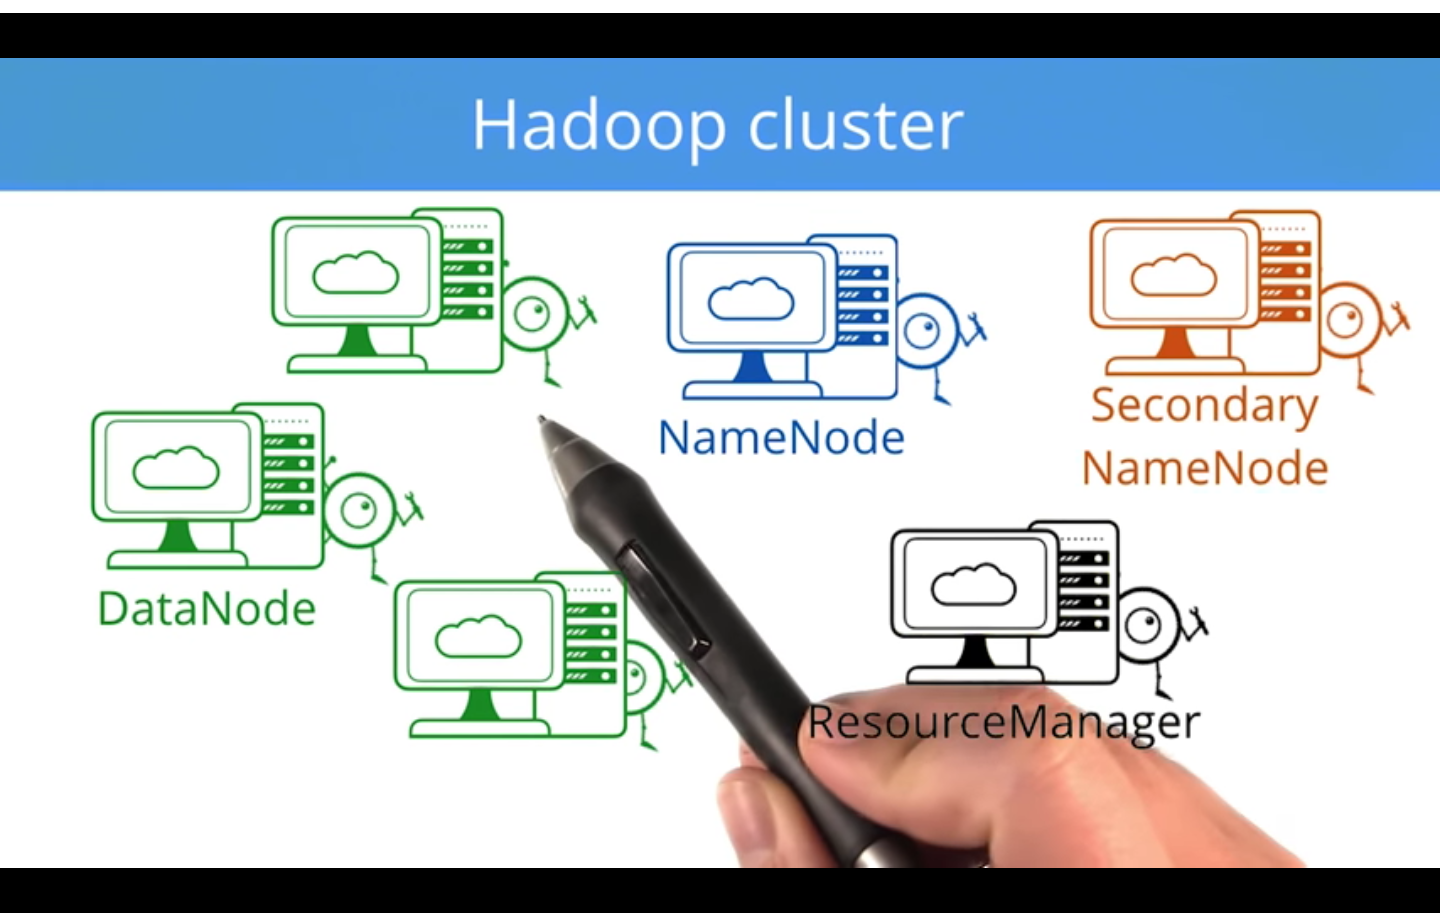 Deploying a Hadoop Cluster